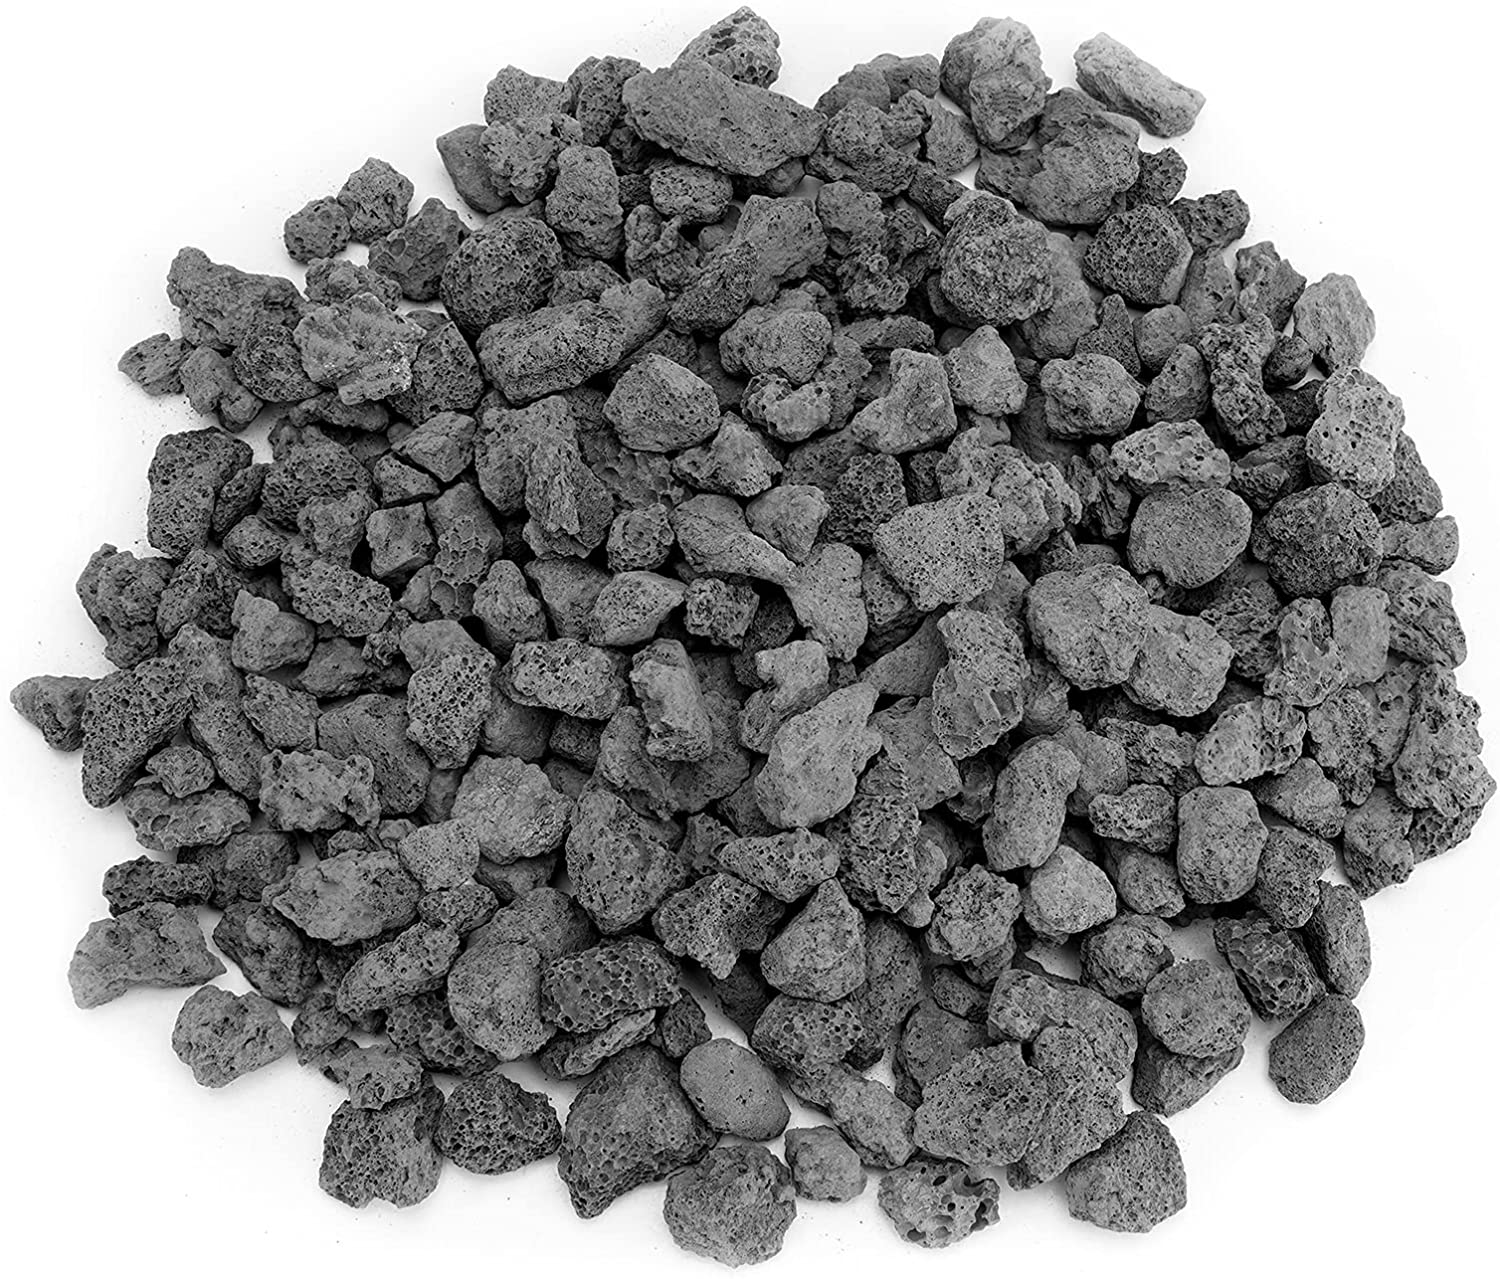 Stanbroil 10 Purchase Pounds Lava Rock Ranking TOP20 Pits Bowls Granules for Fire